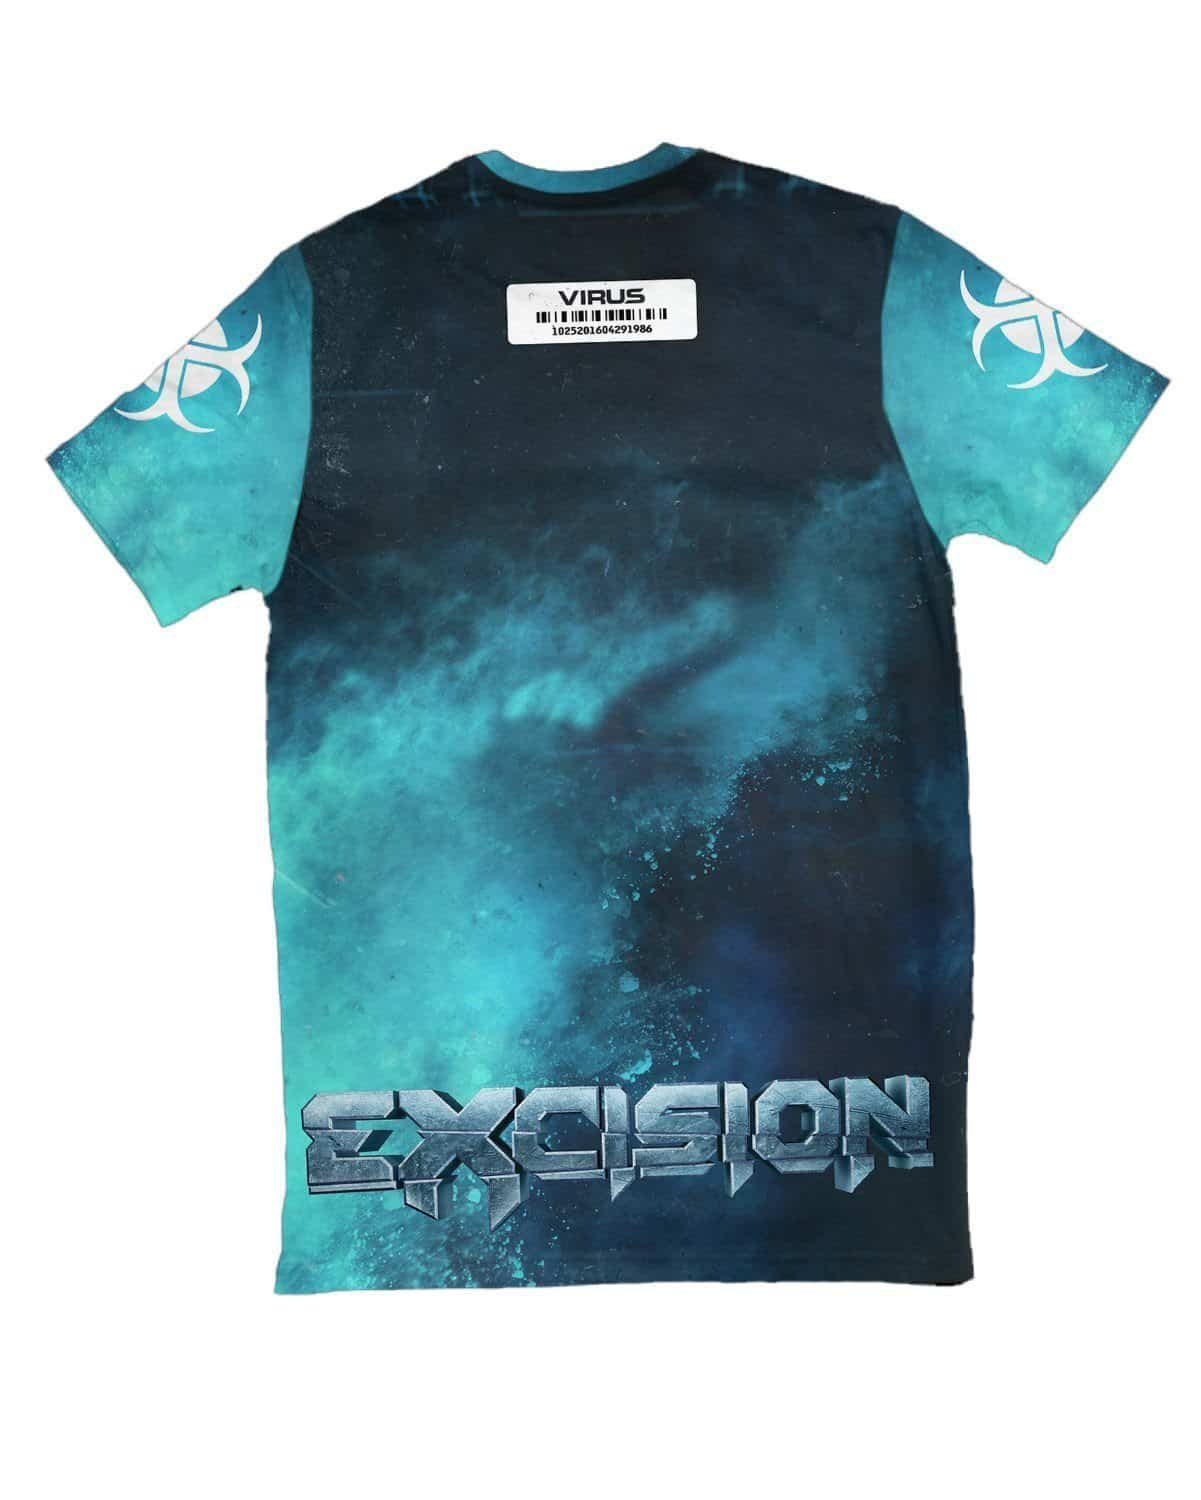 Excision Virus Unisex Tee